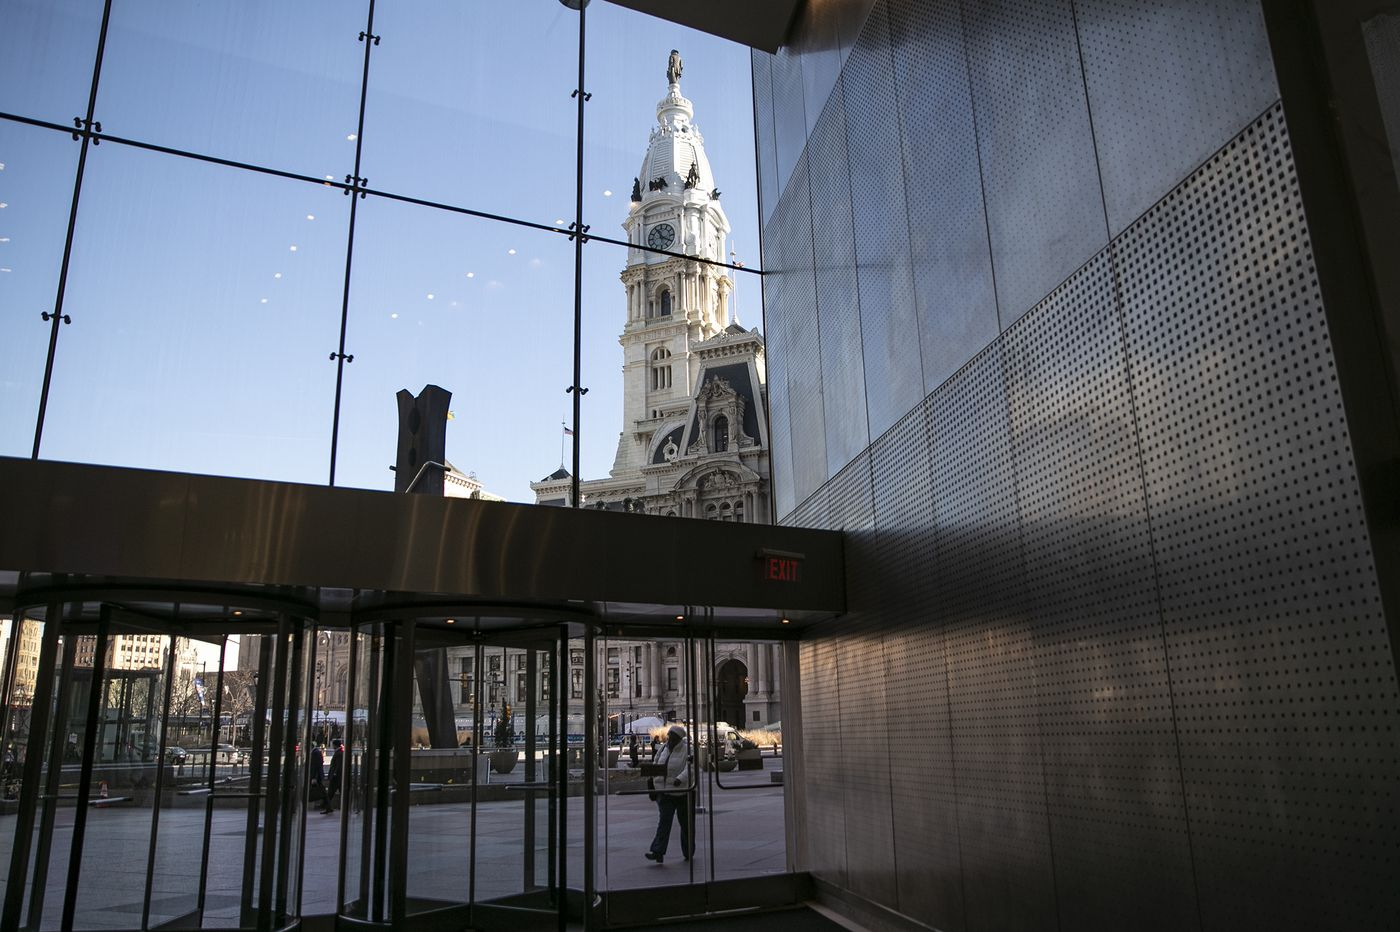 Philly has its corrupt government officials. Let's 'name and fame' the honest ones. | Opinion